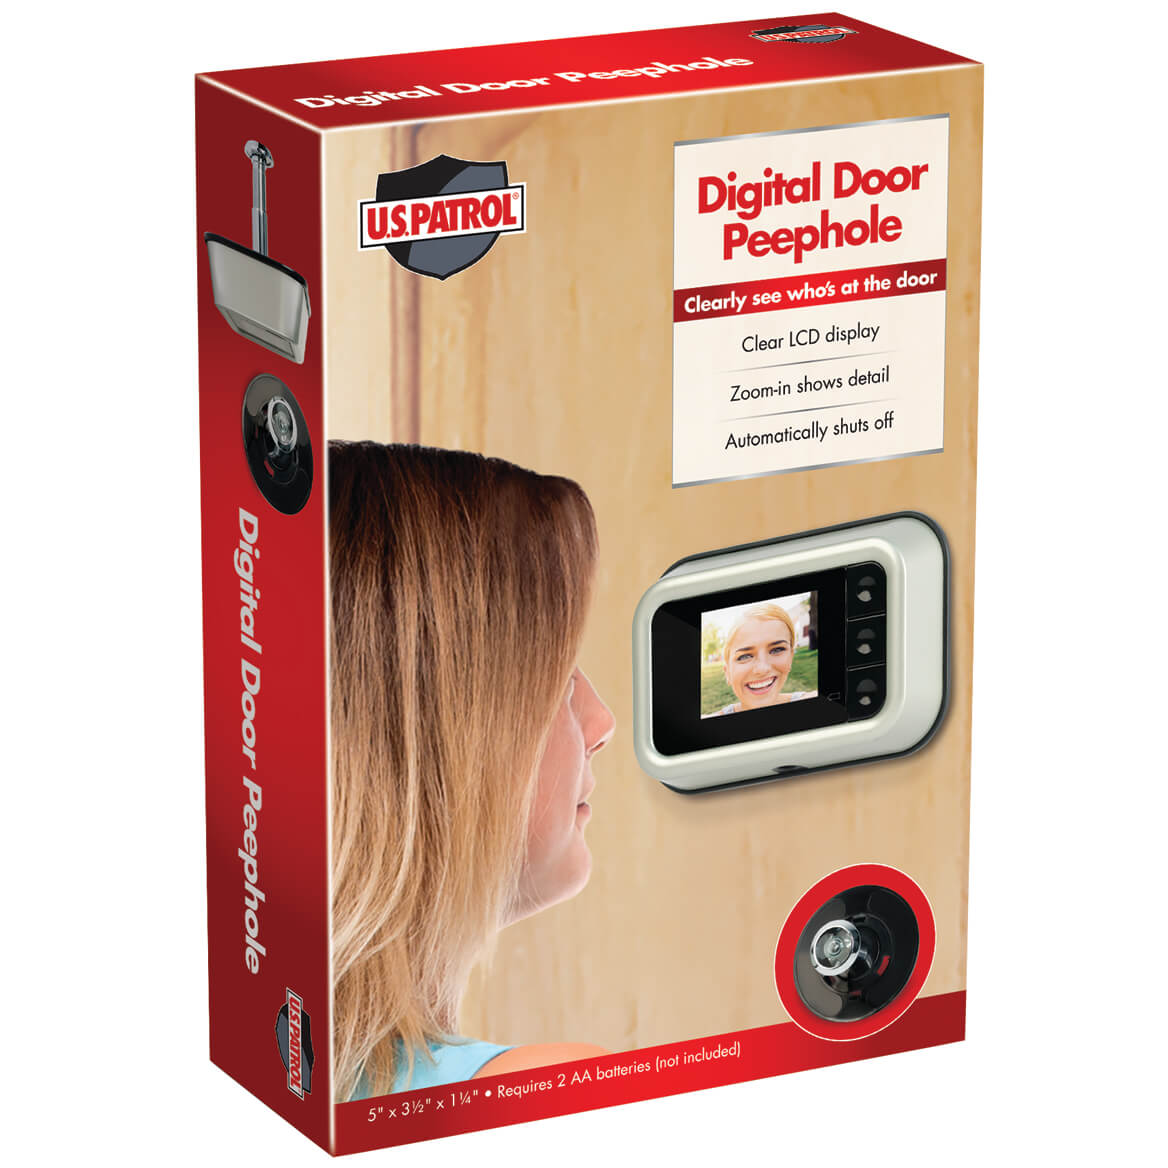 Digital Door Peephole-361546